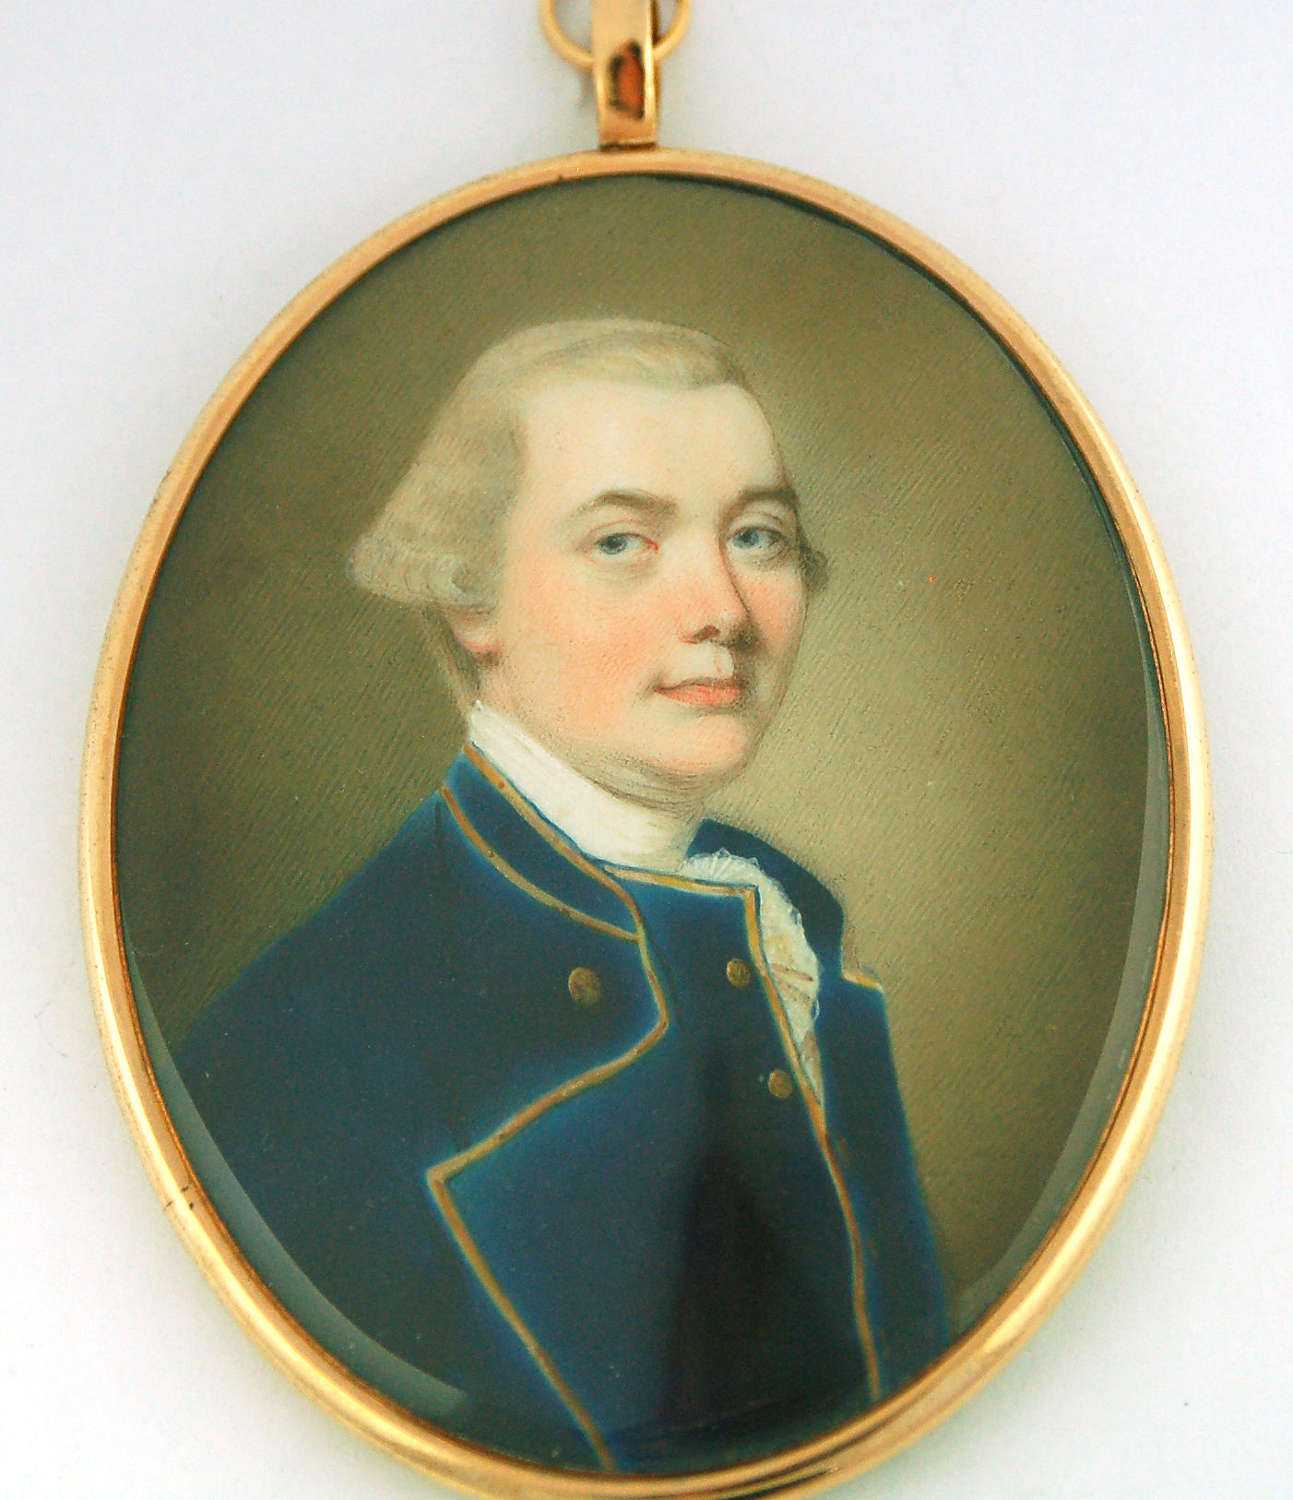 Member of Seton family by Chinnery